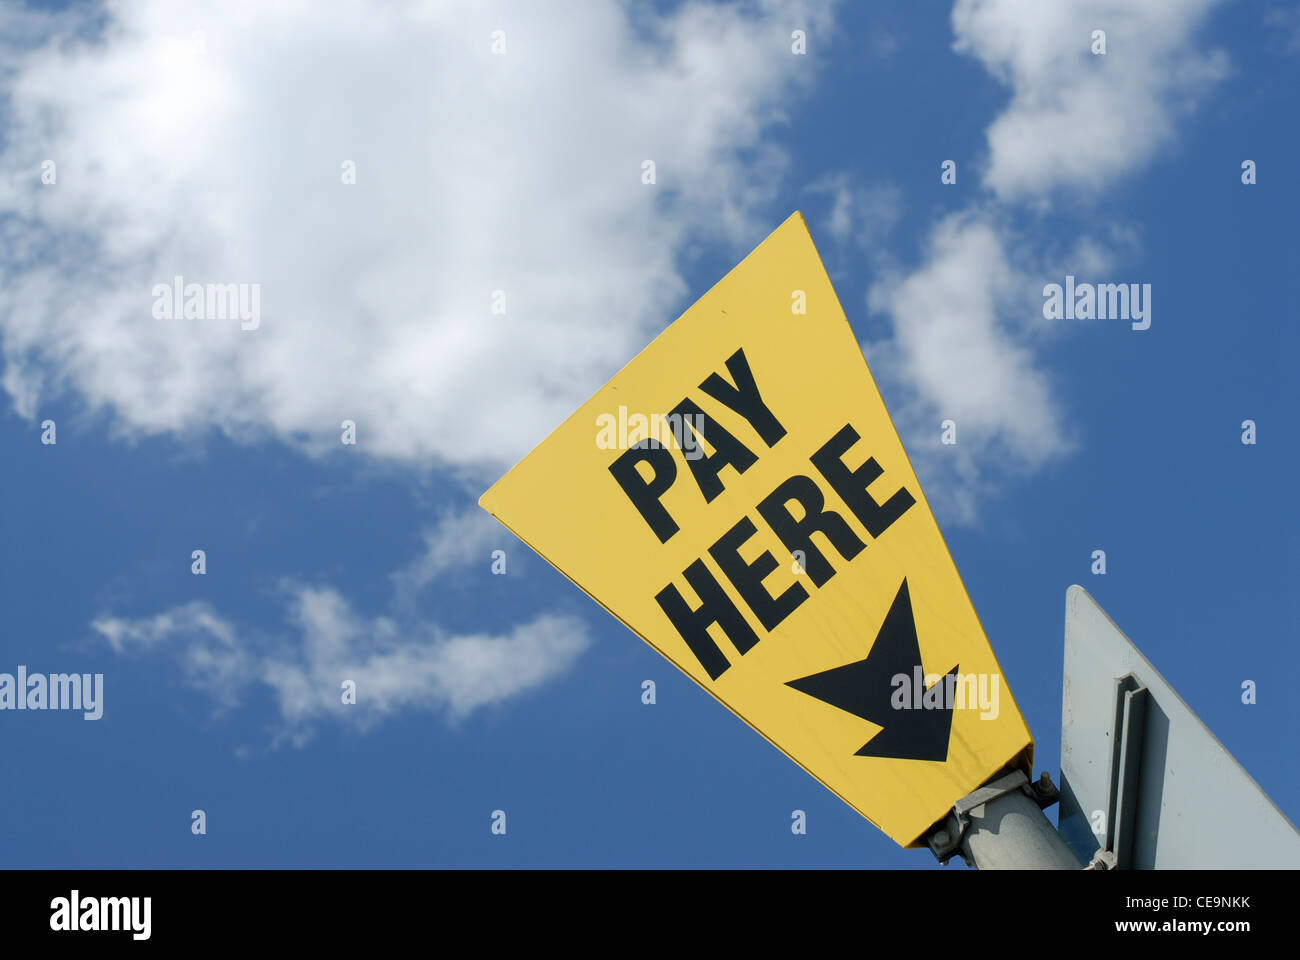 Pay here sign - Stock Image